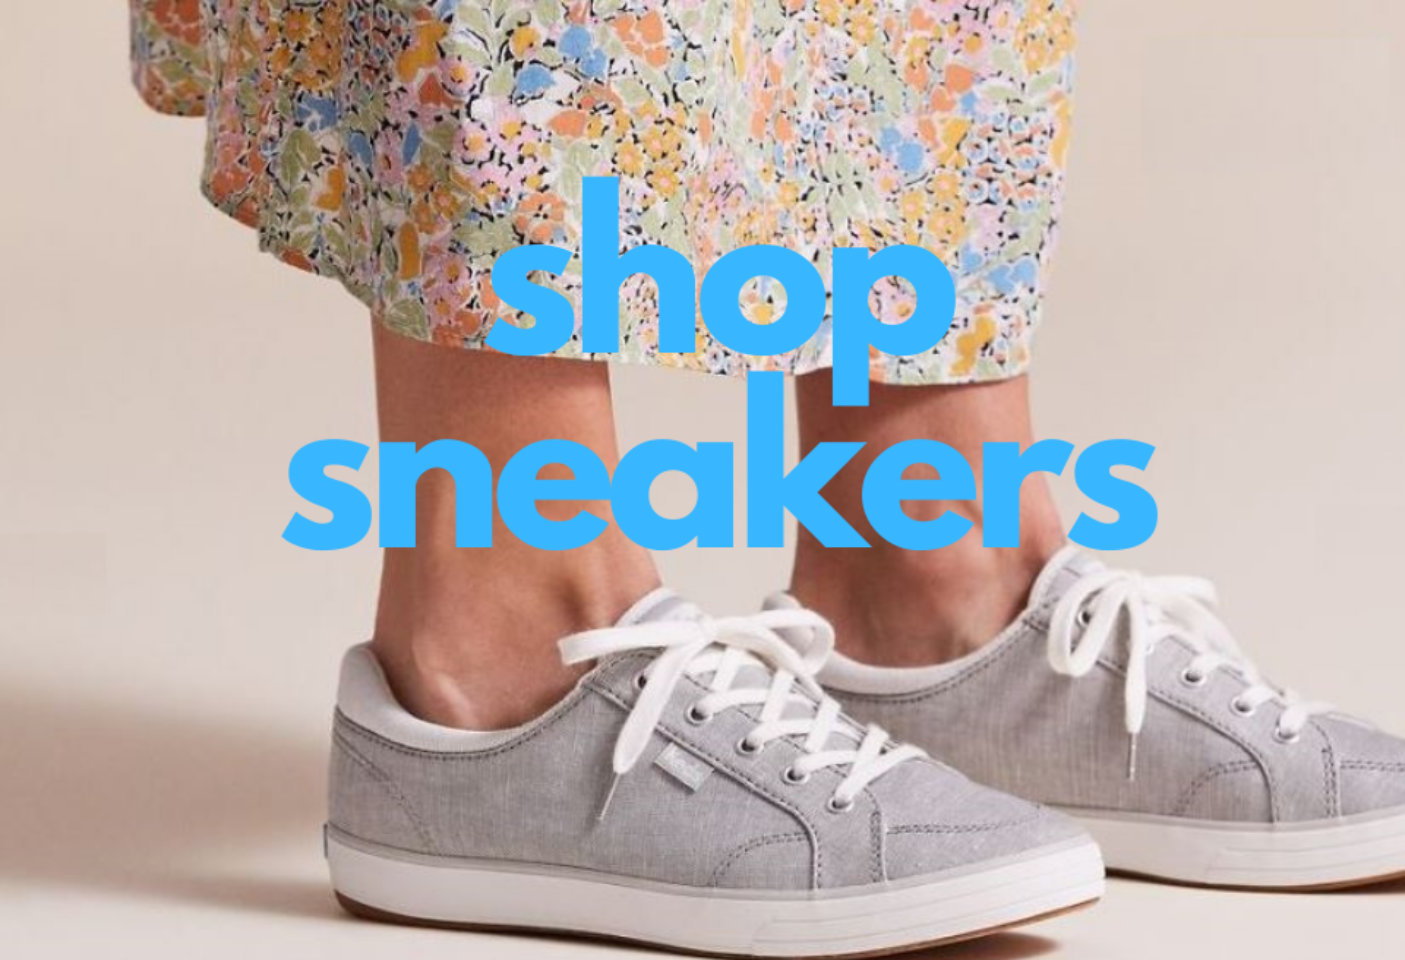 Shop Sneakers at Brock's